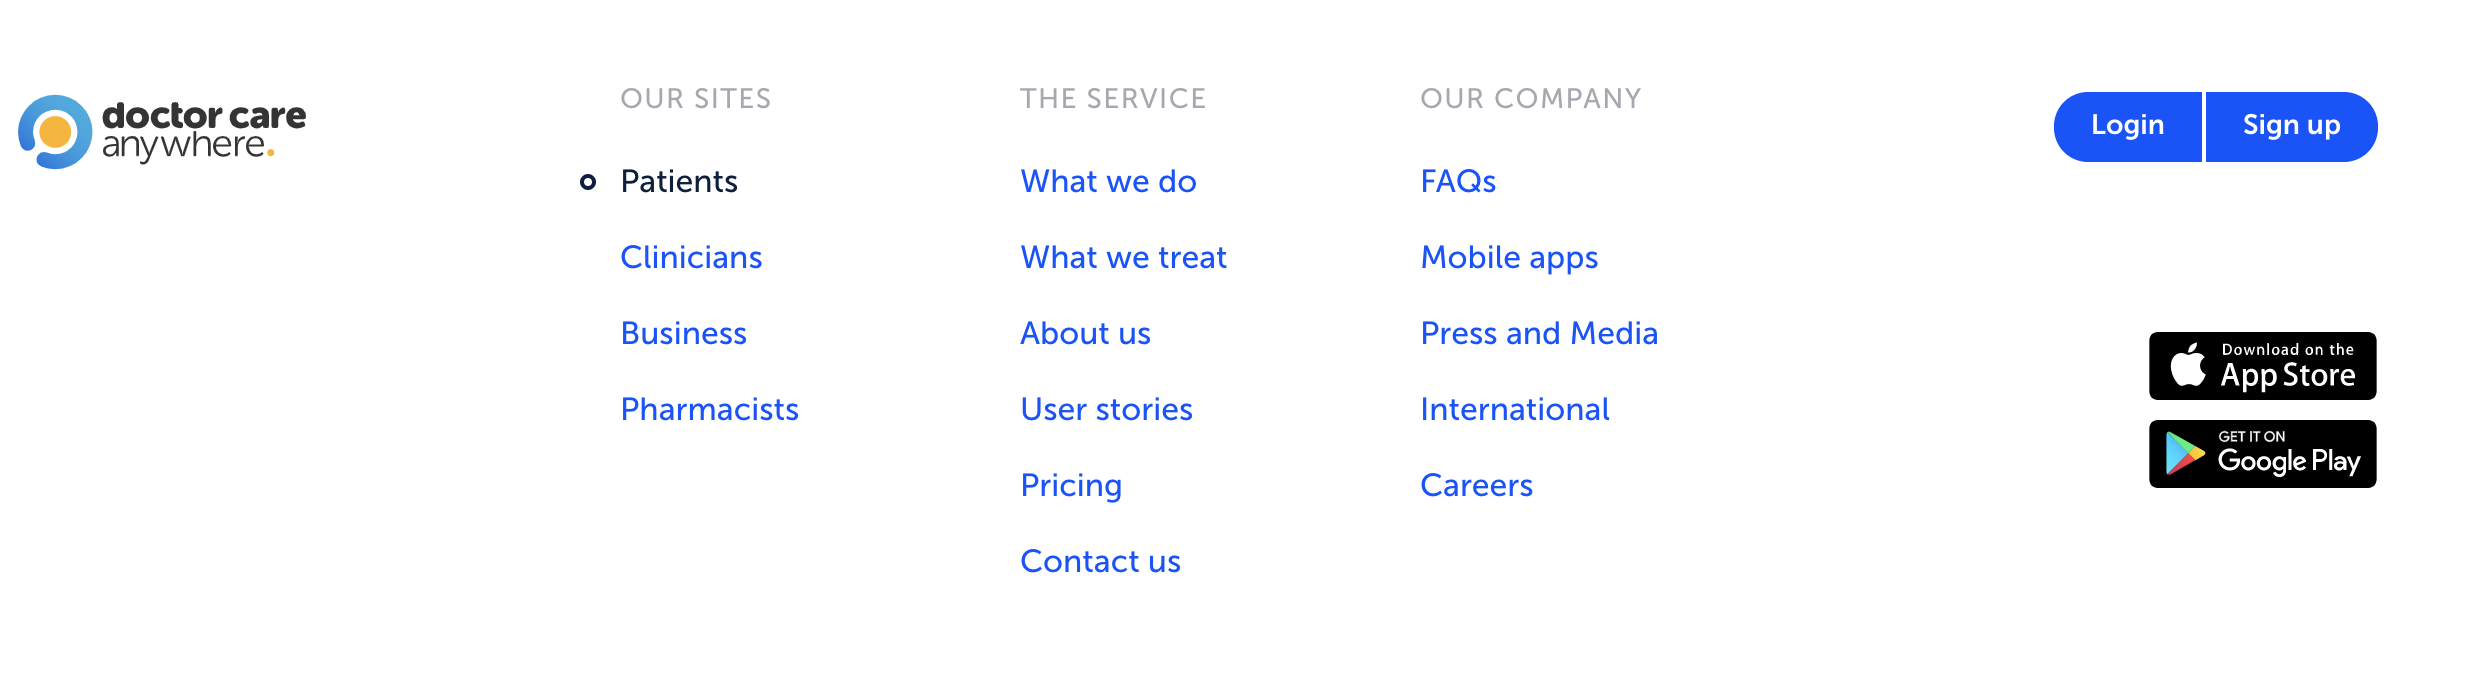 doctors who care website footer